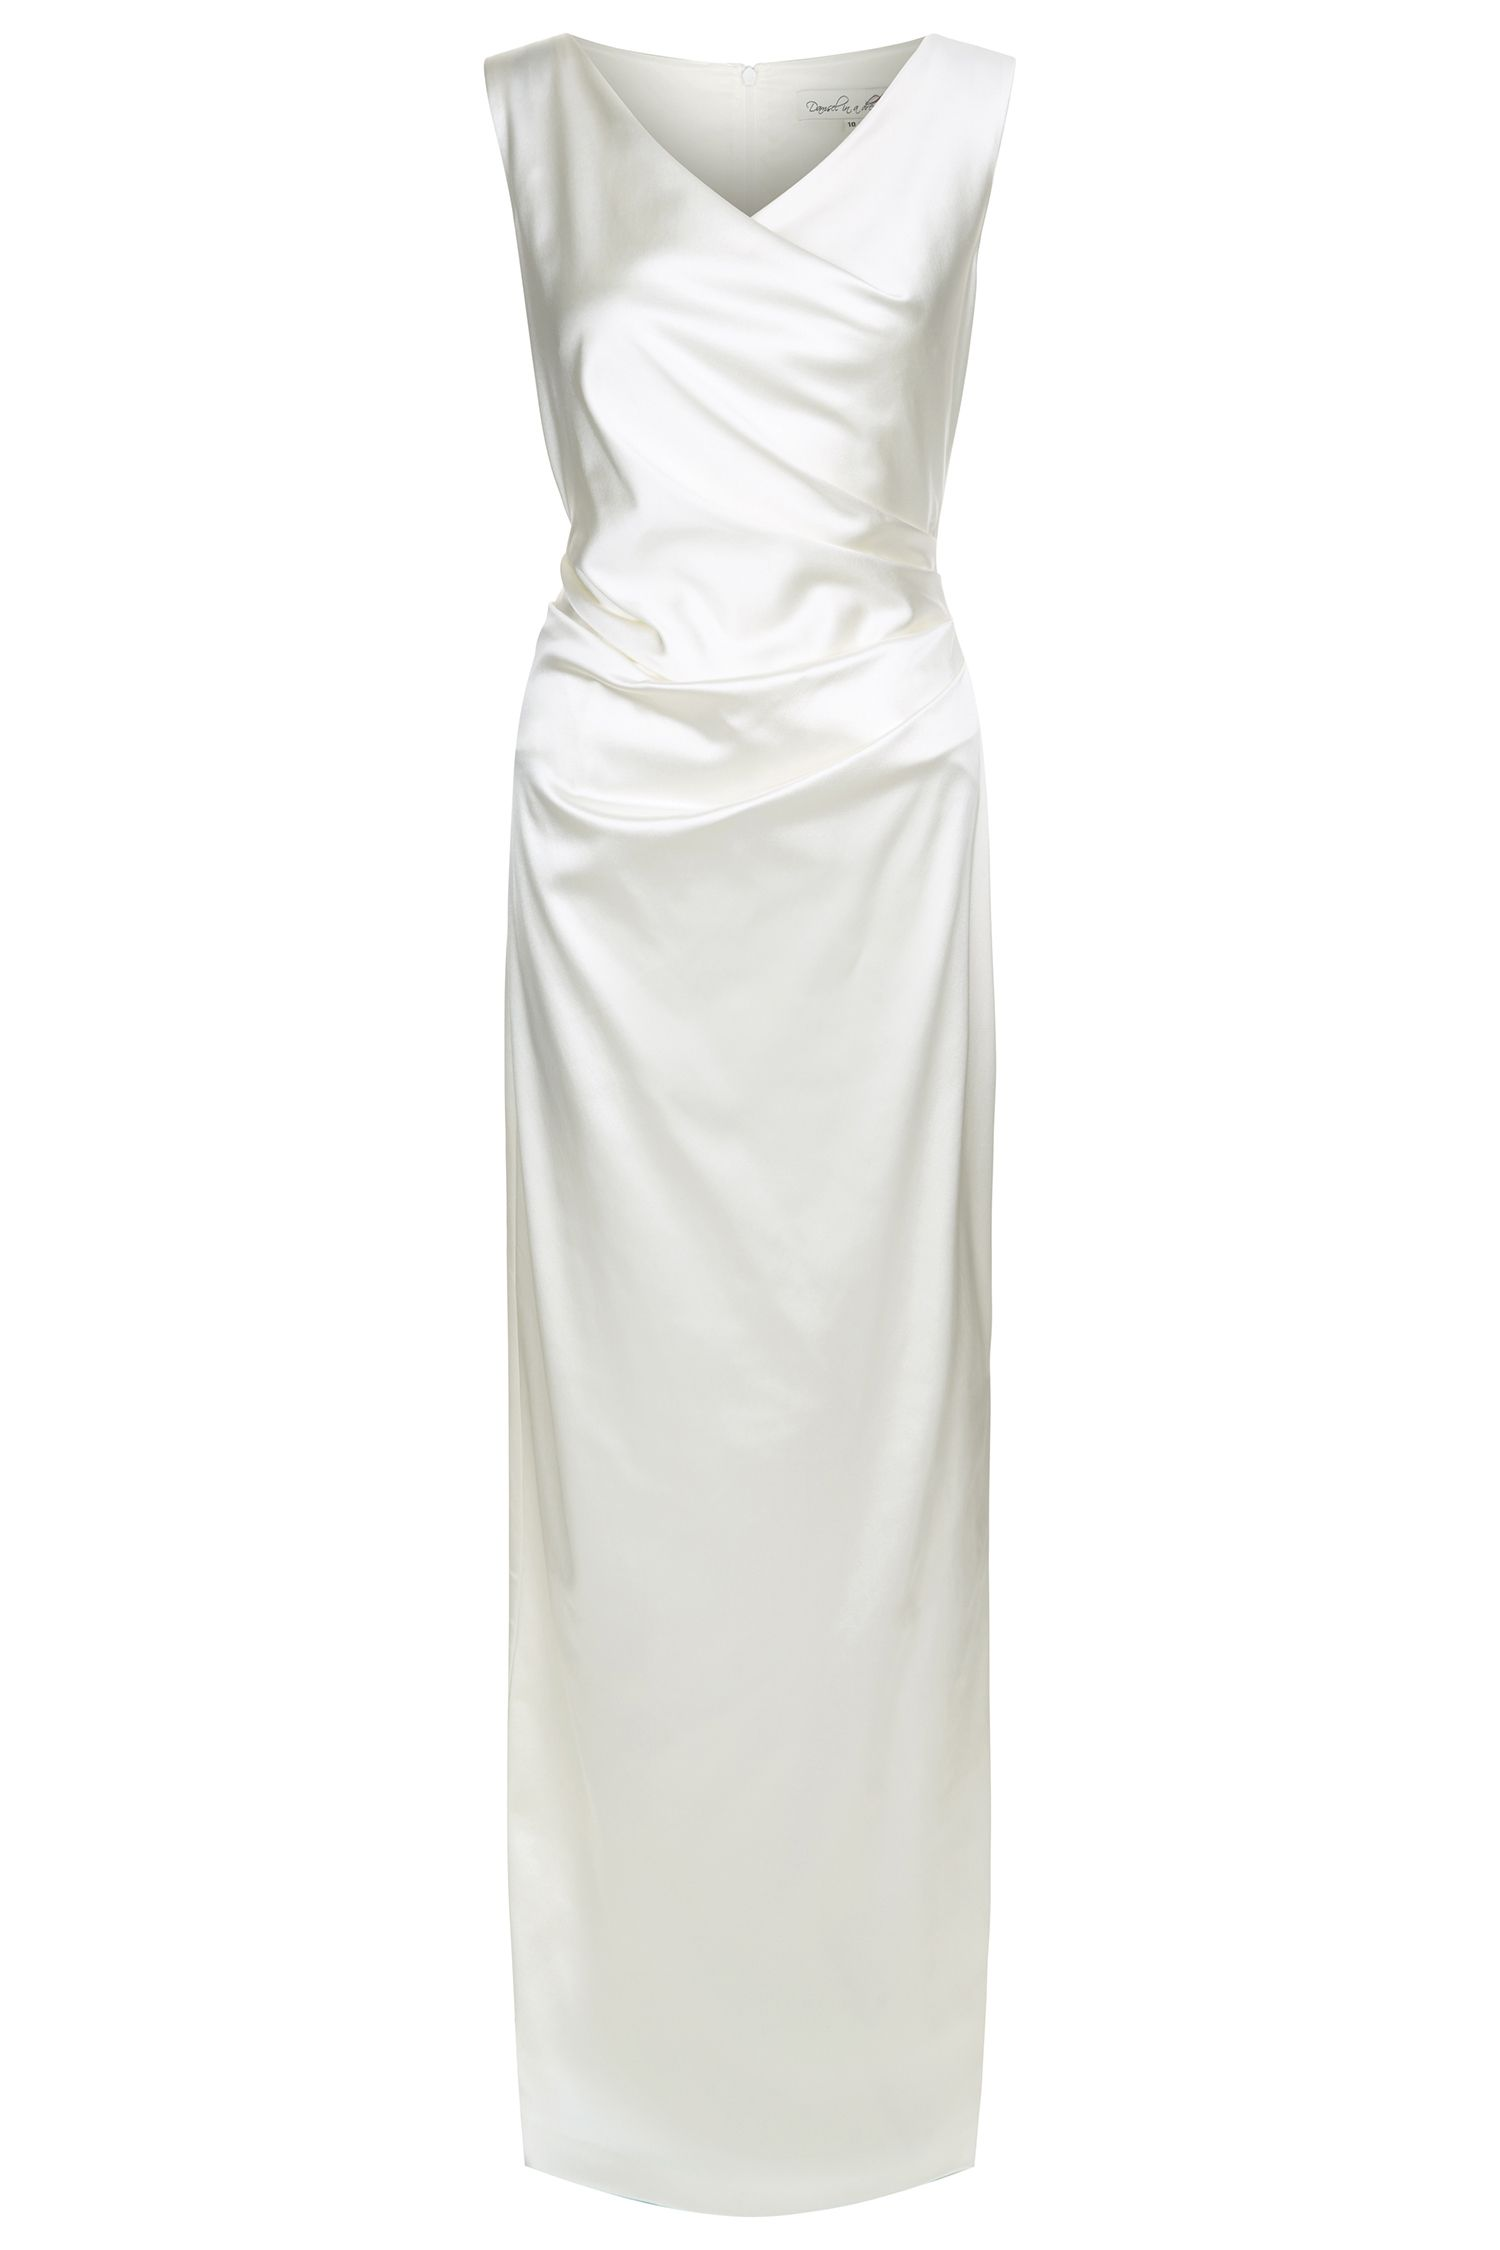 Damsel in a Dress Bellini Dress, Cream